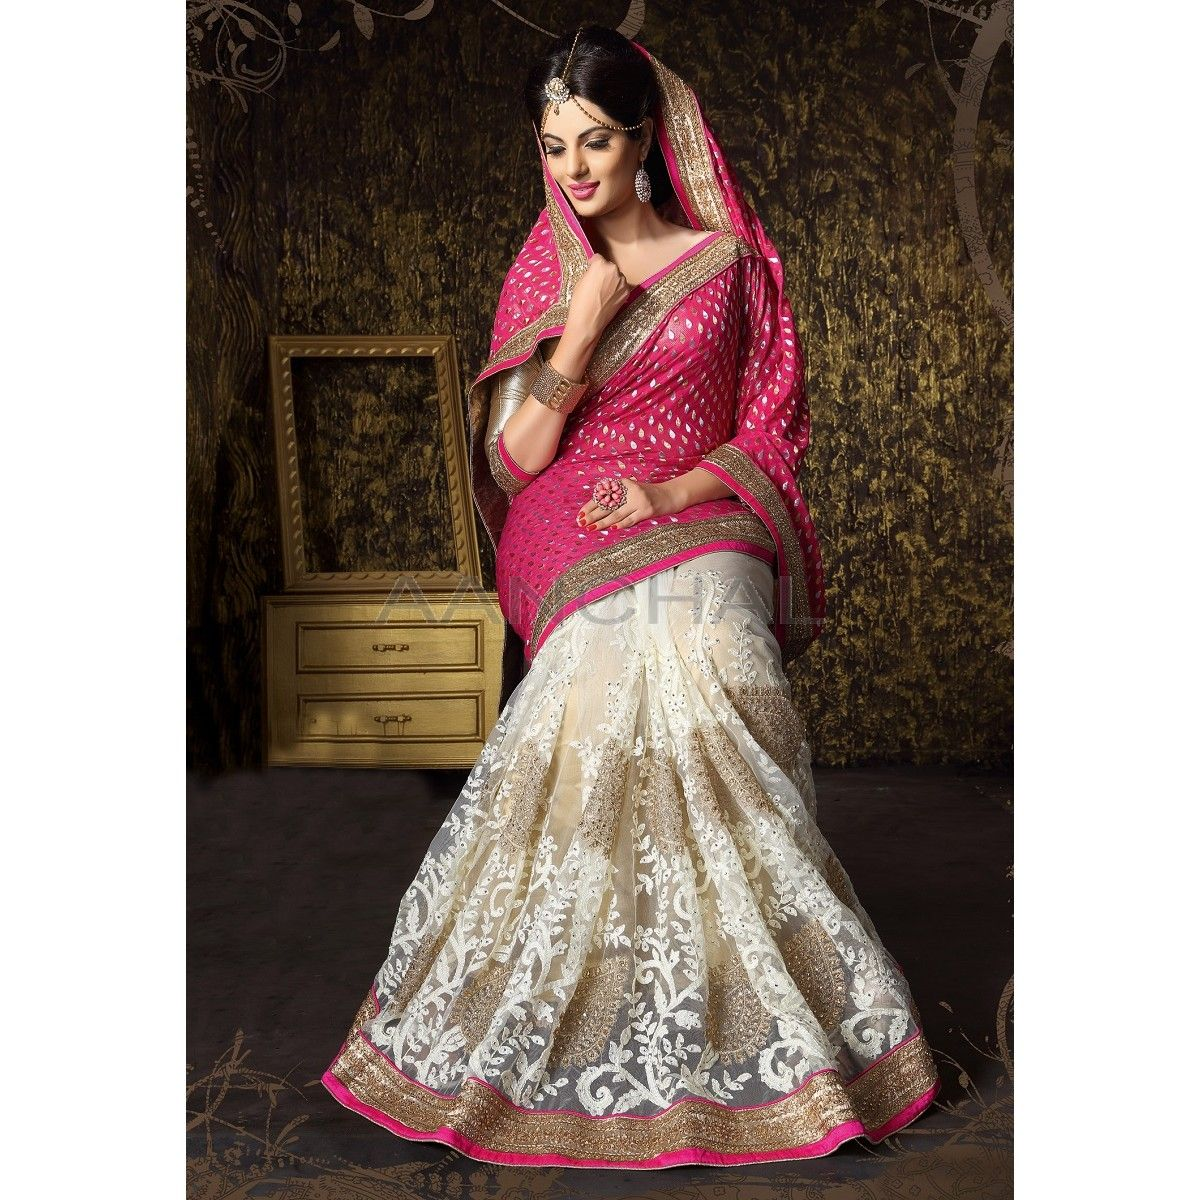 Wedding White Sarees Online: Fuchsia And Off White Color #Saree With #Blouse